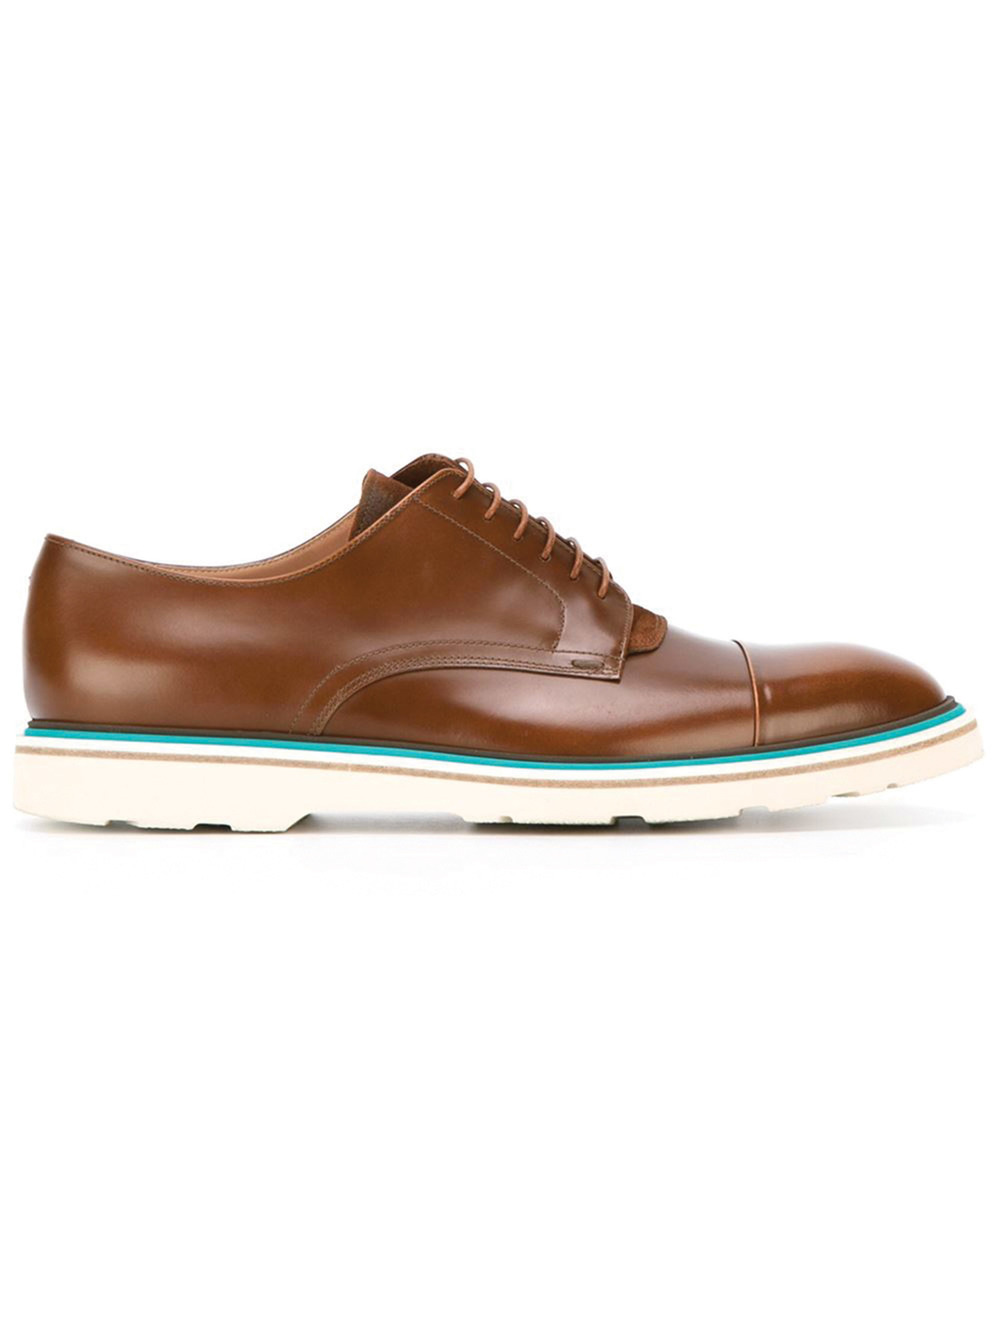 Paul Smith Contrast Sole Derby Shoes $639